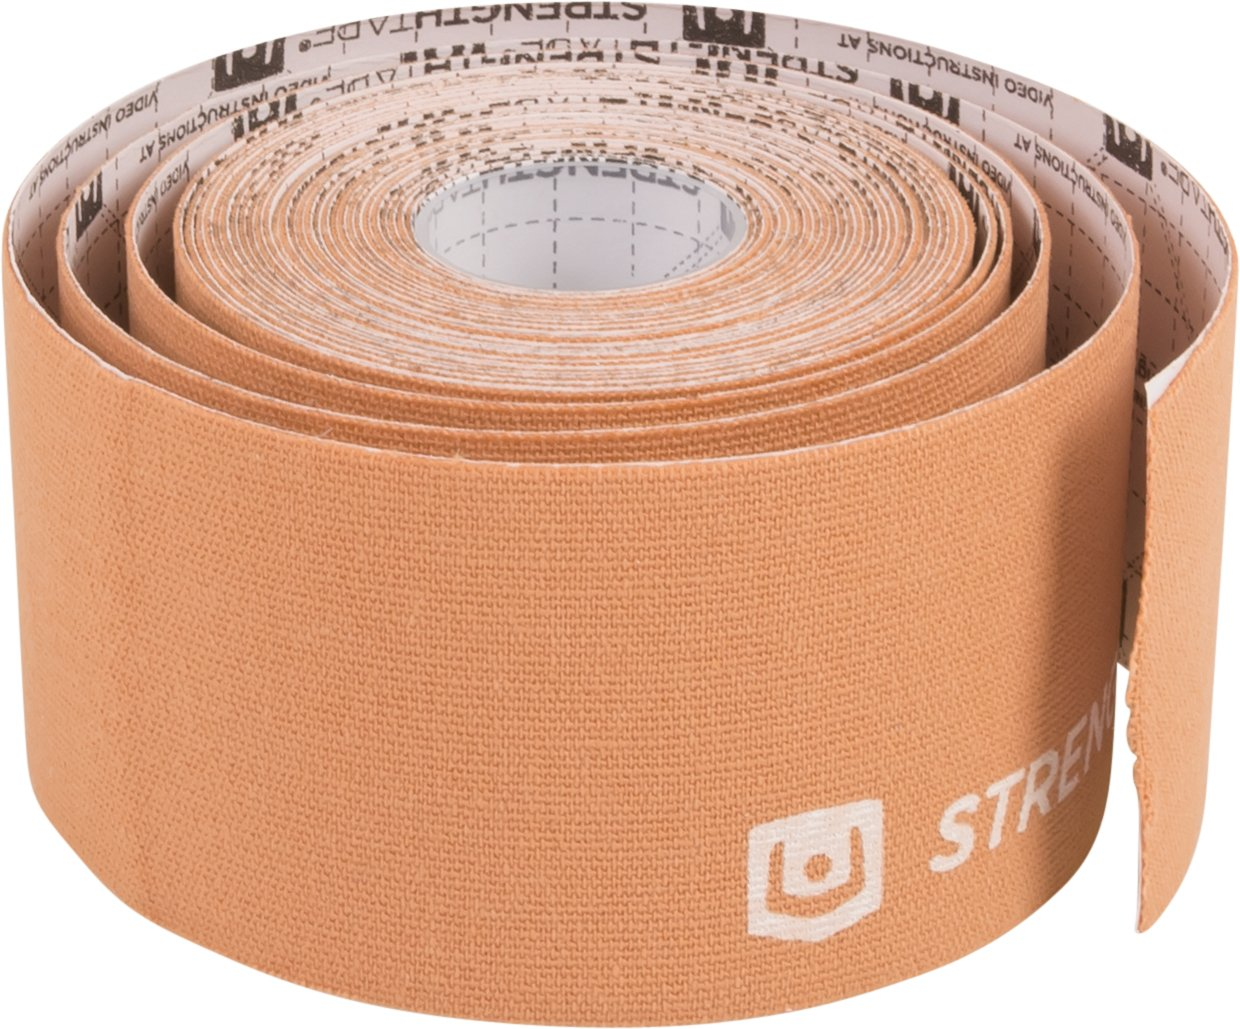 StrengthTape Kinesiology Tape, 5M Uncut K Tape Roll, Premium Sports Tape Provides Support and Stability to The Target Area, Beige